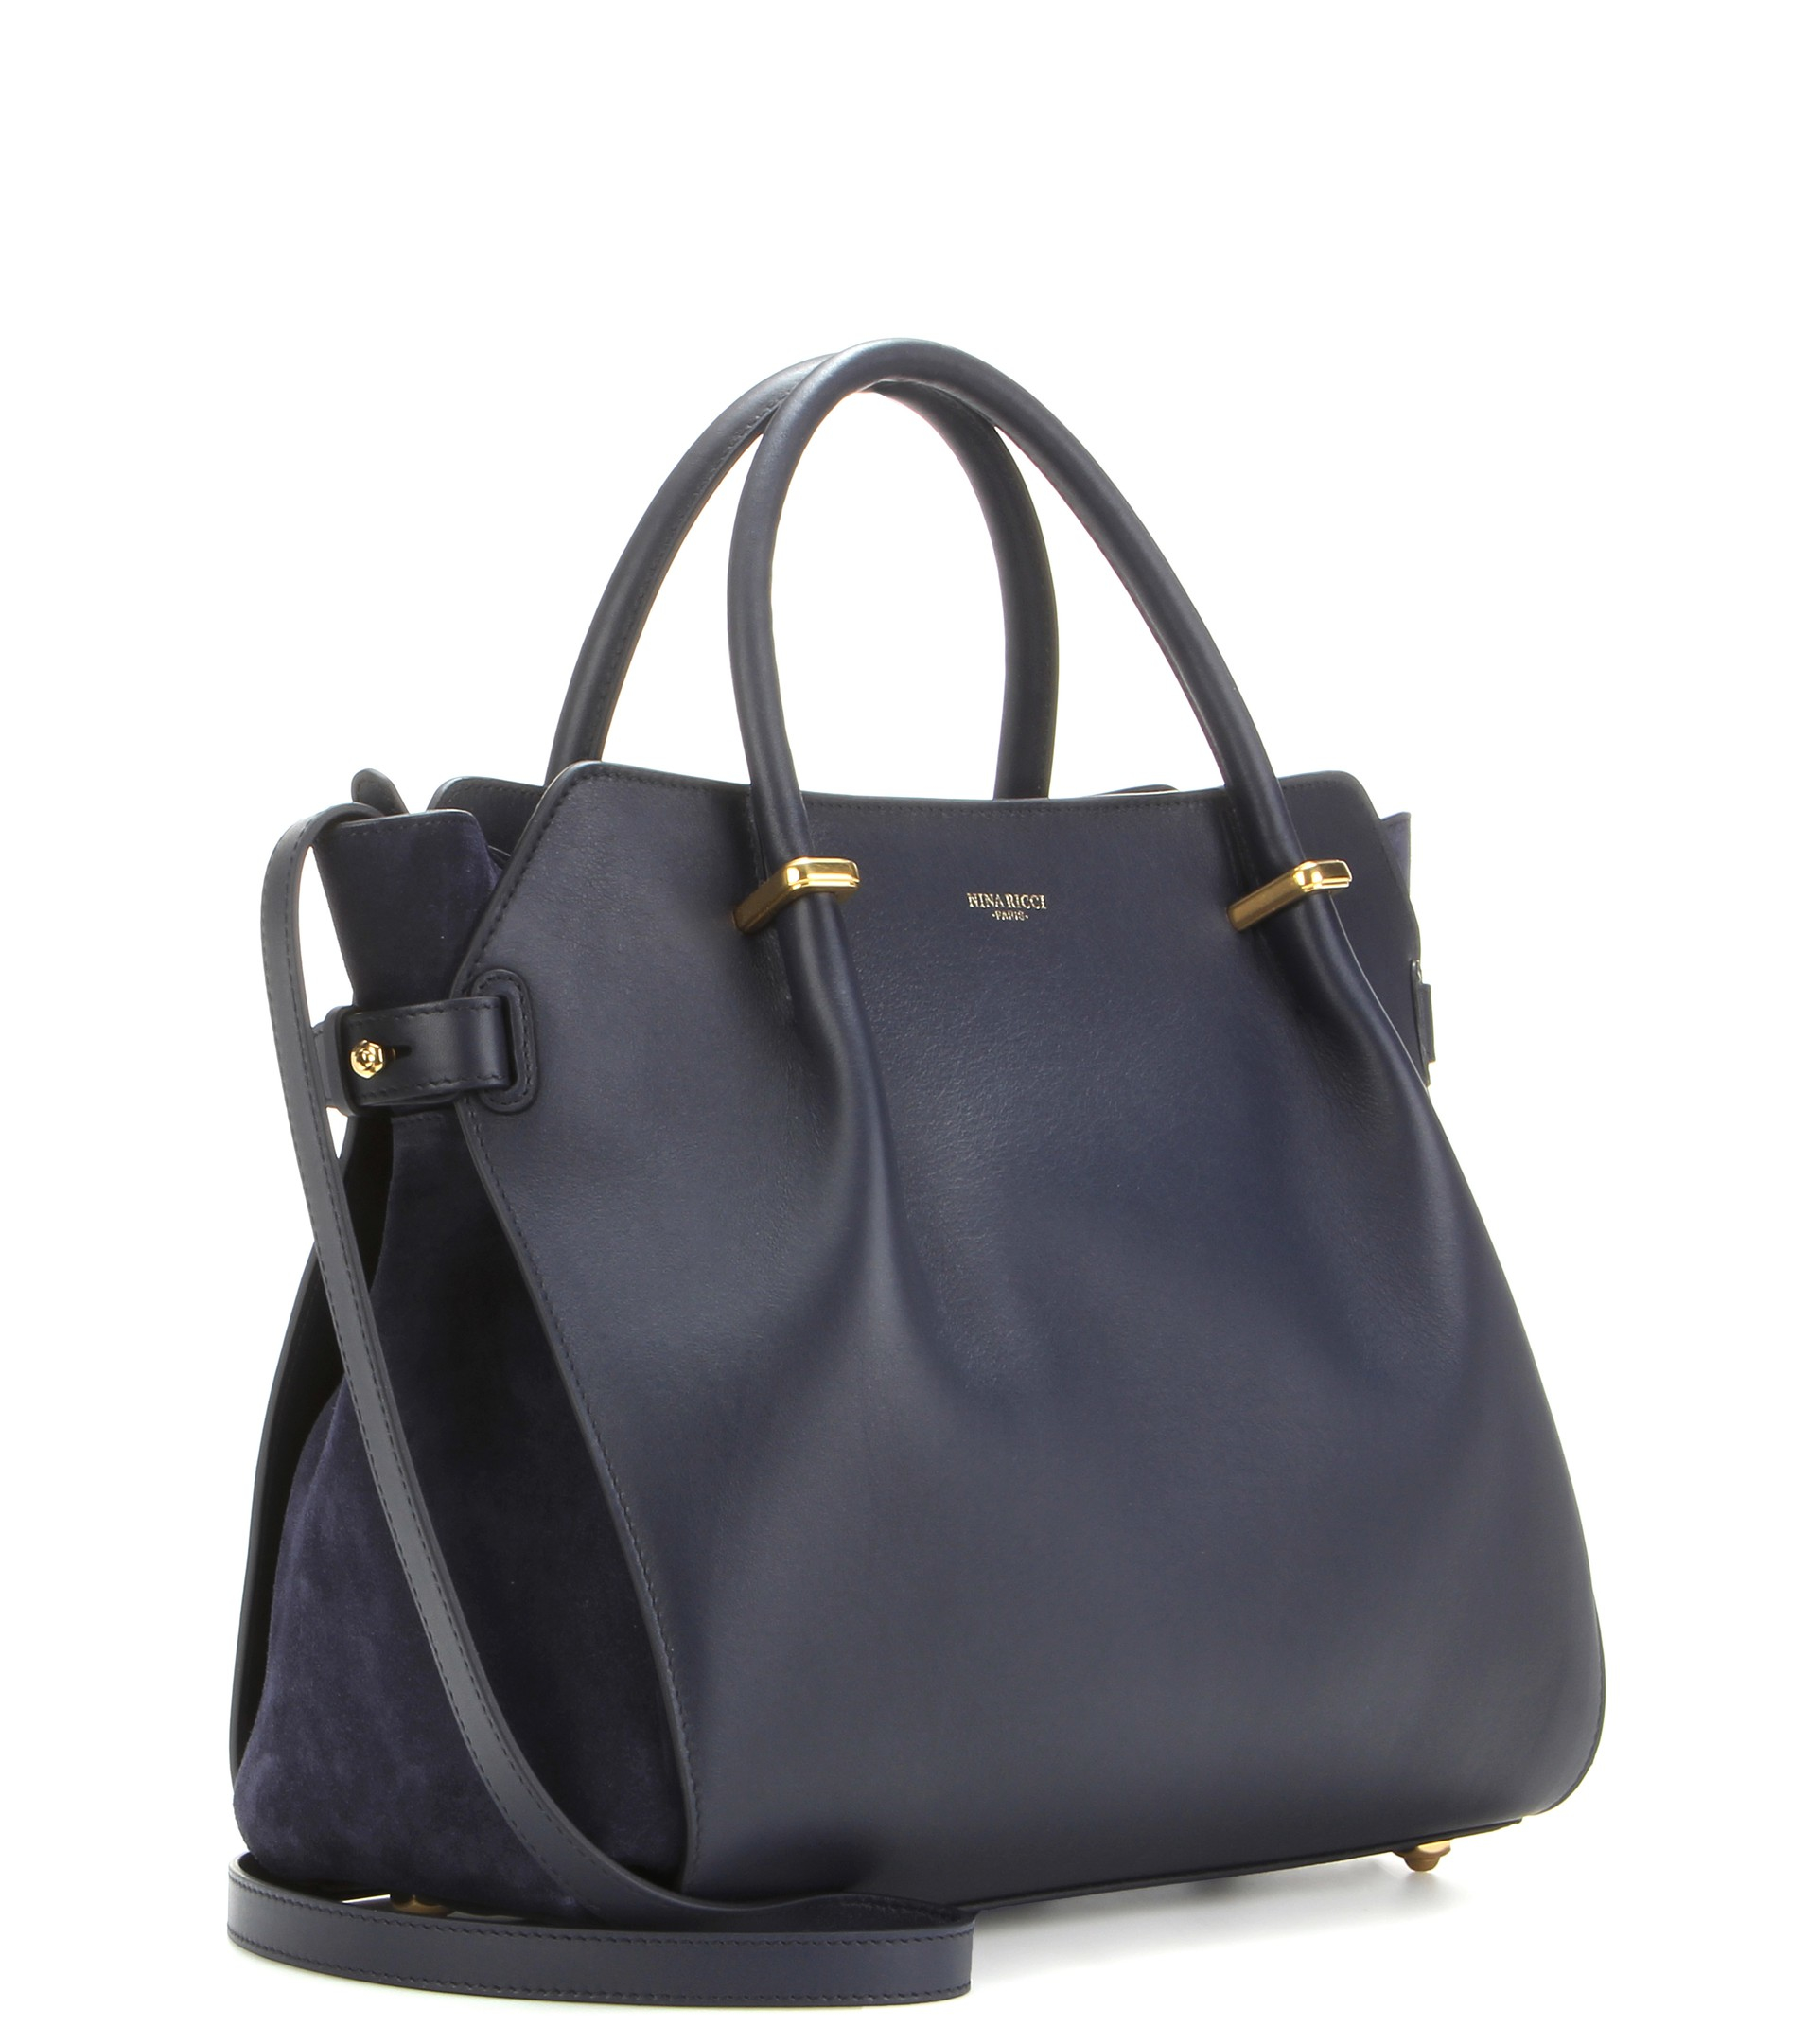 c140d47924 Nina Ricci Marché Small Leather Tote in Blue - Lyst